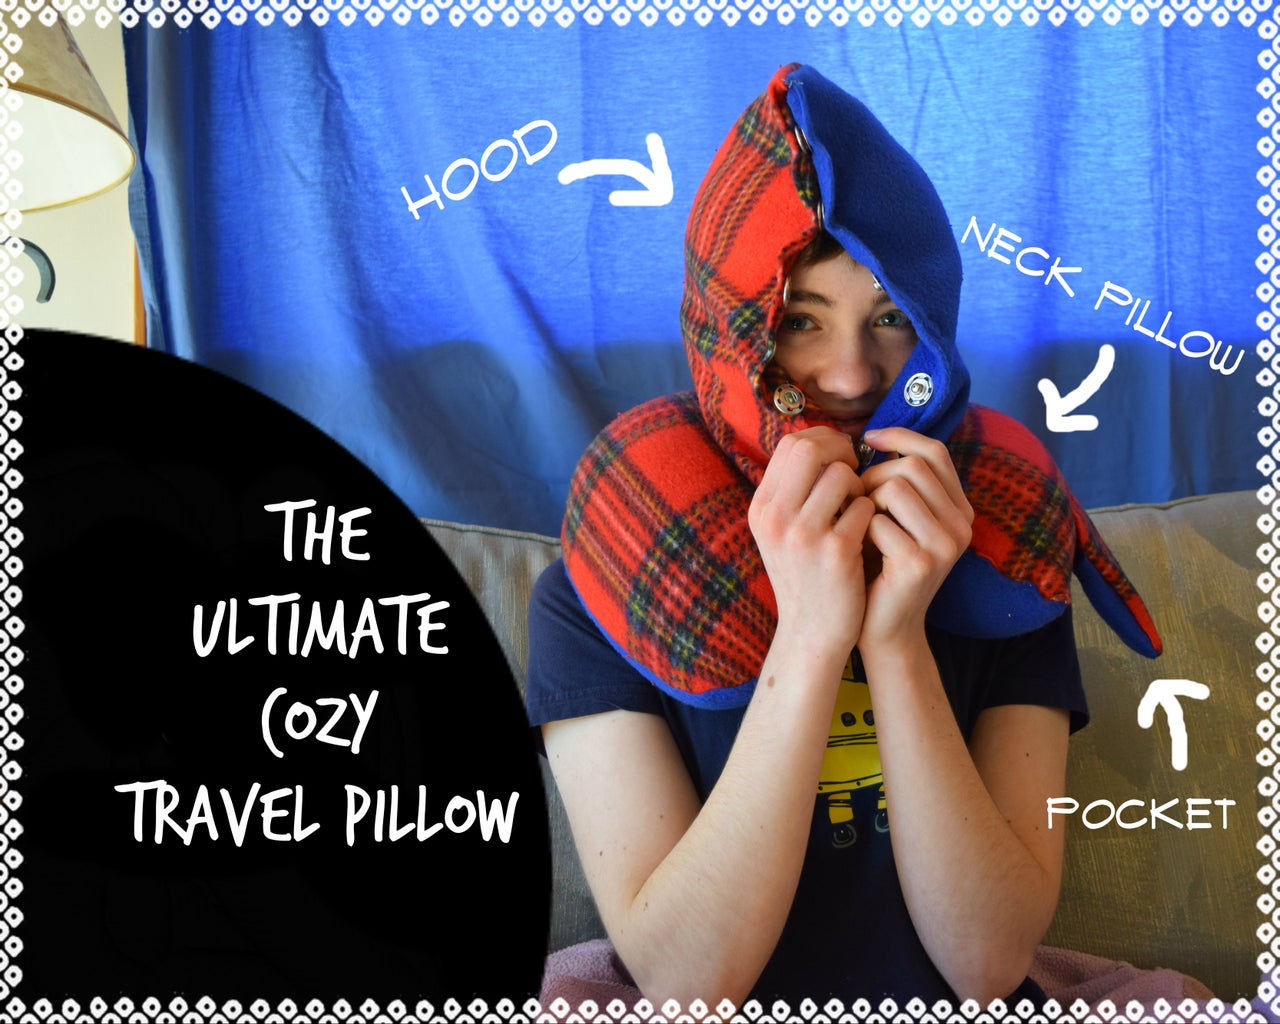 The Ultimate Cozy Travel Pillow